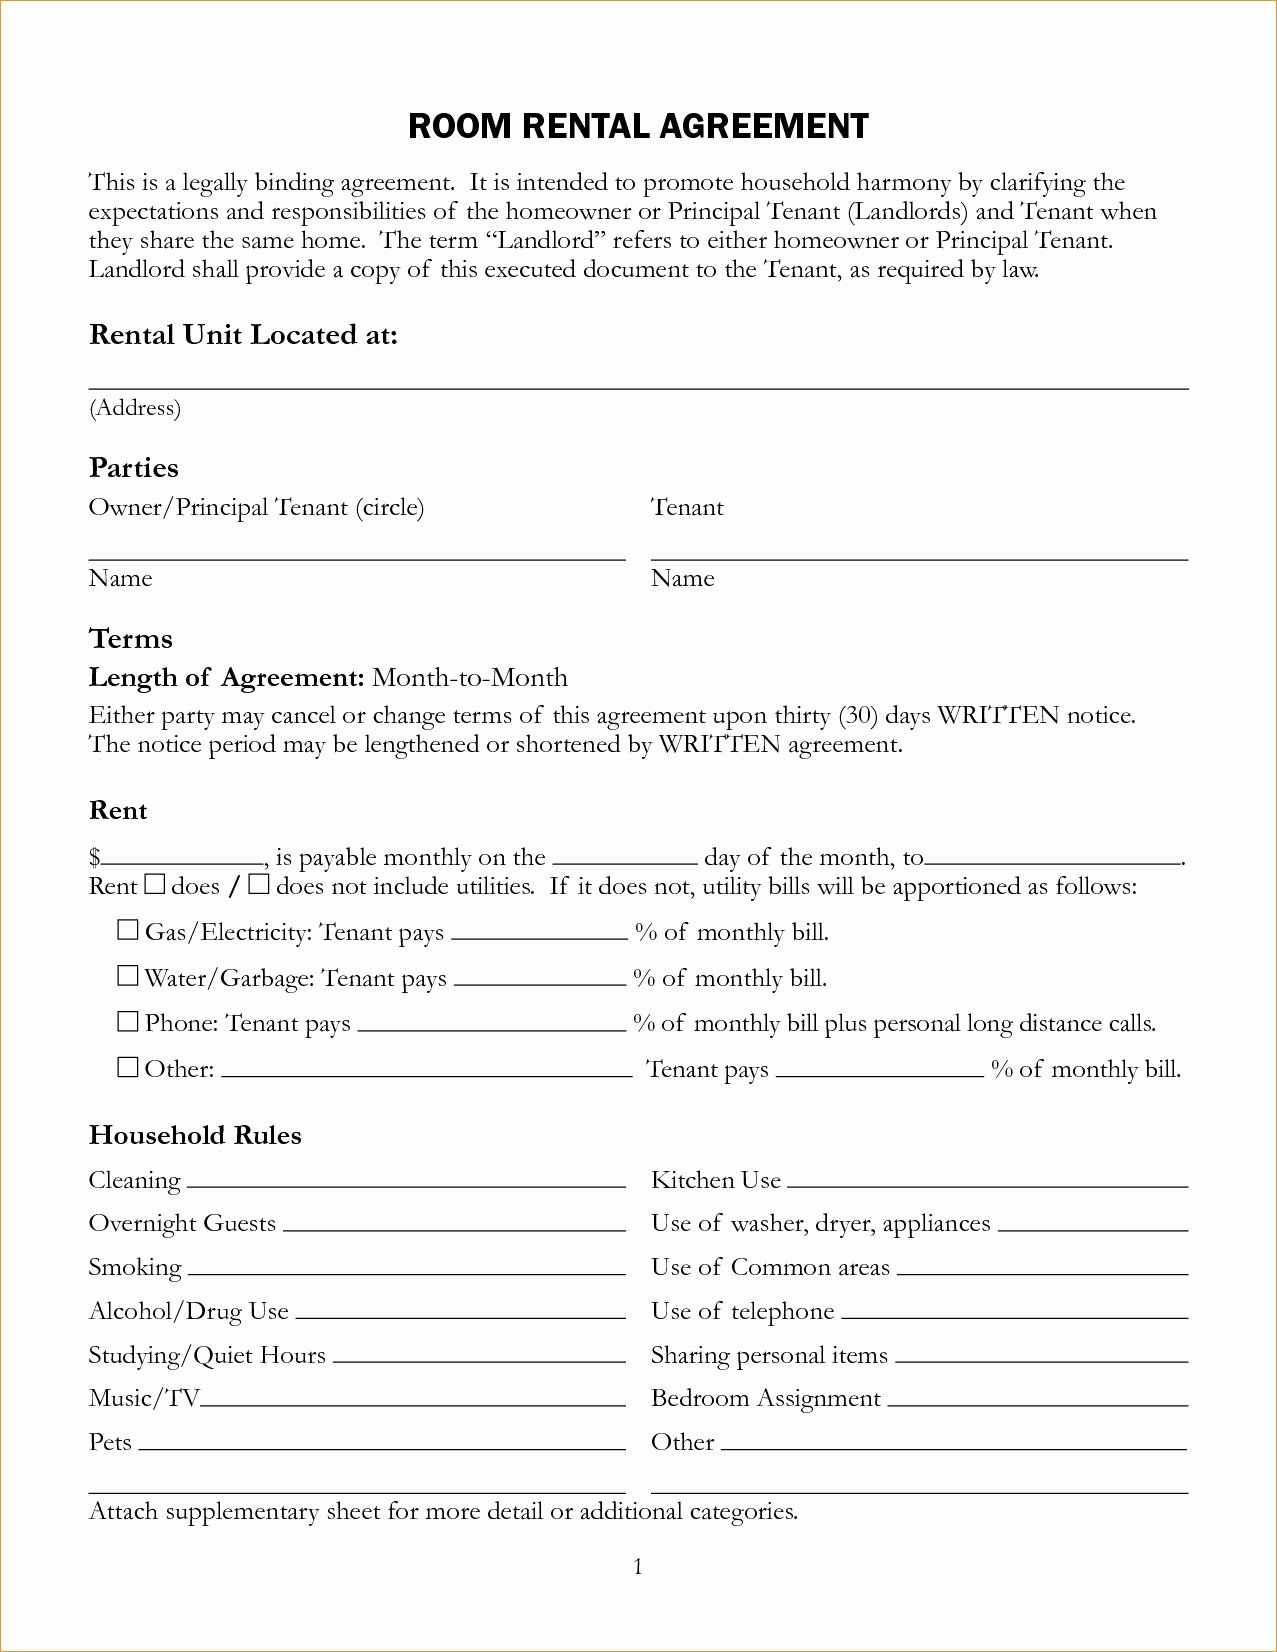 Transfer Of Business Ownership Agreement Template Lovely Change Ownership Letter to Tenants Template Examples